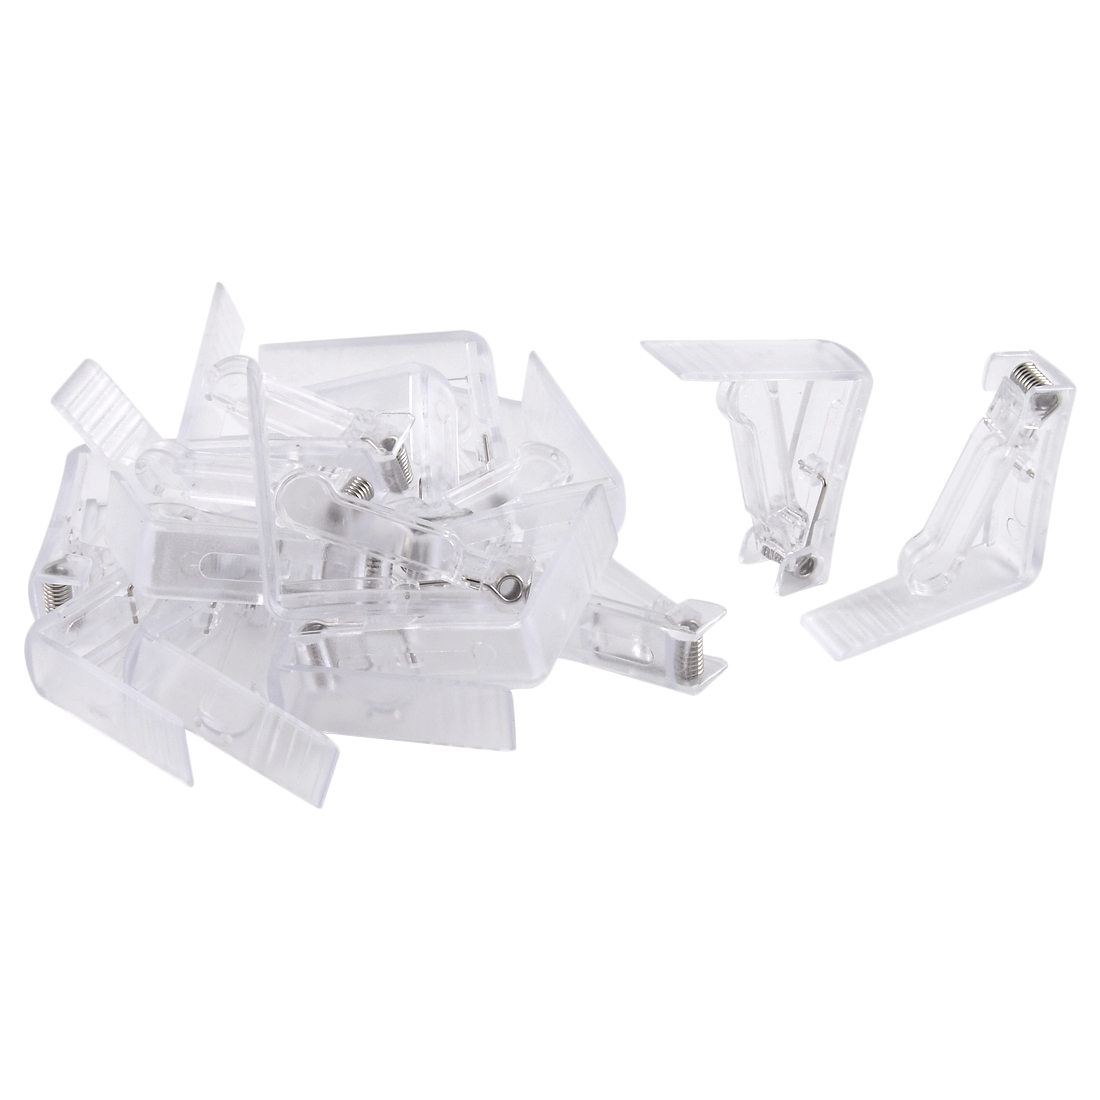 Home Party Wedding Banquet Plastic Table Cloth Holder Clip Clamp Clear 16 Pcs